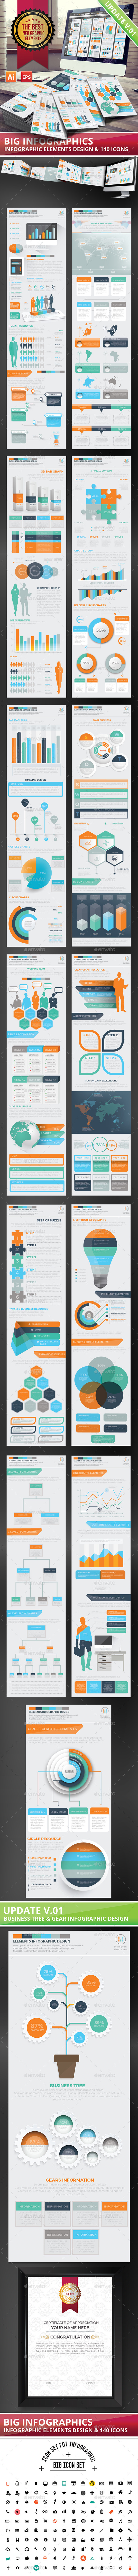 The Infographics Design